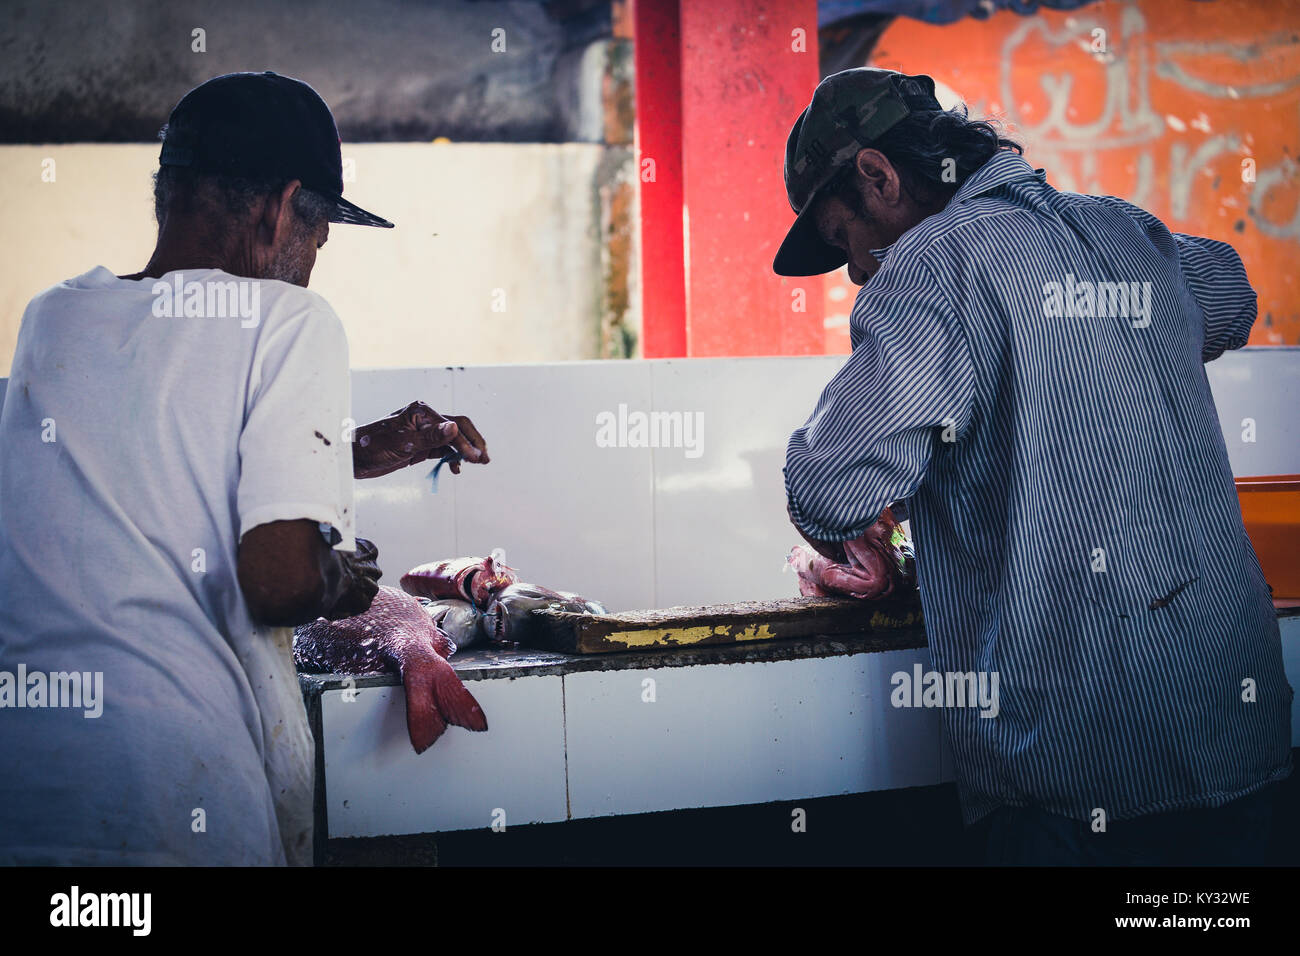 Two fishermen cleaning fish for sale on market, Victoria, Seychelles - Stock Image